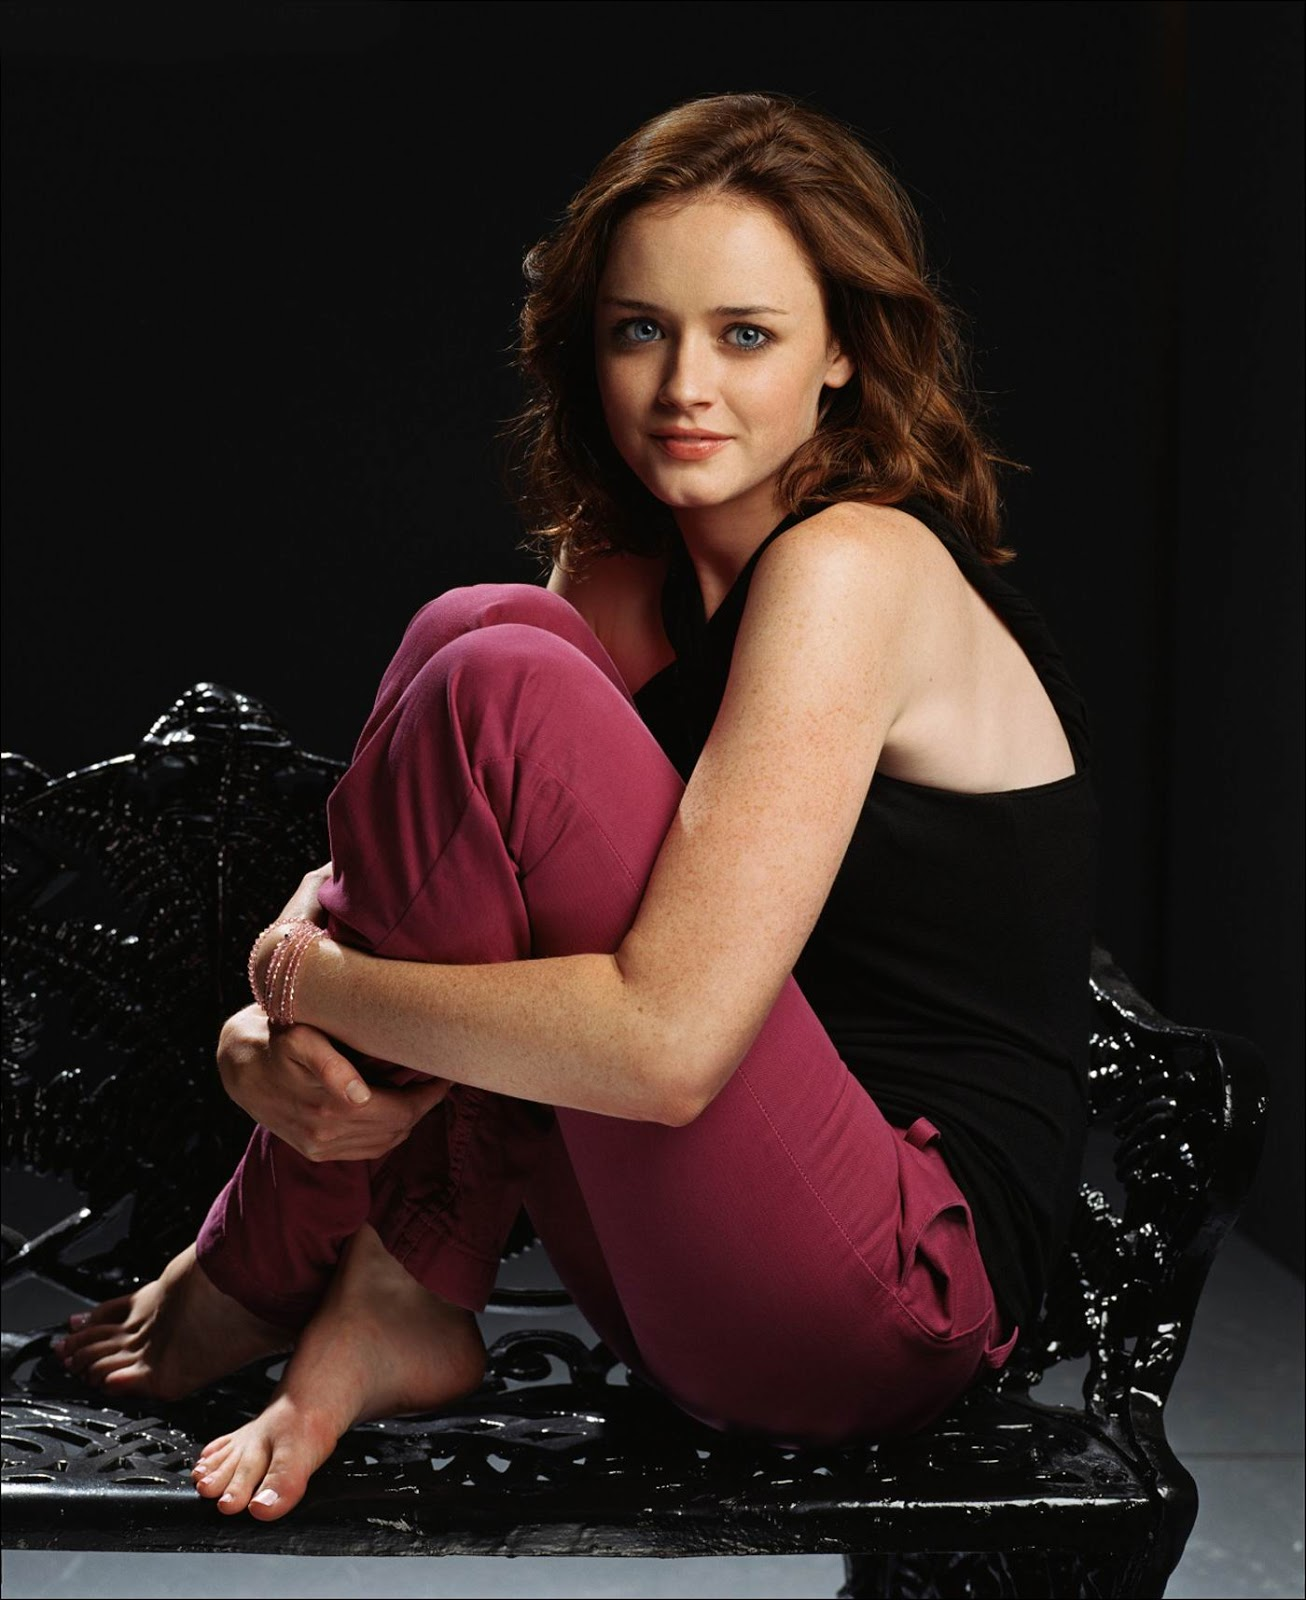 Alexis Bledel nude | The Fappening. 2014-2019 celebrity ...